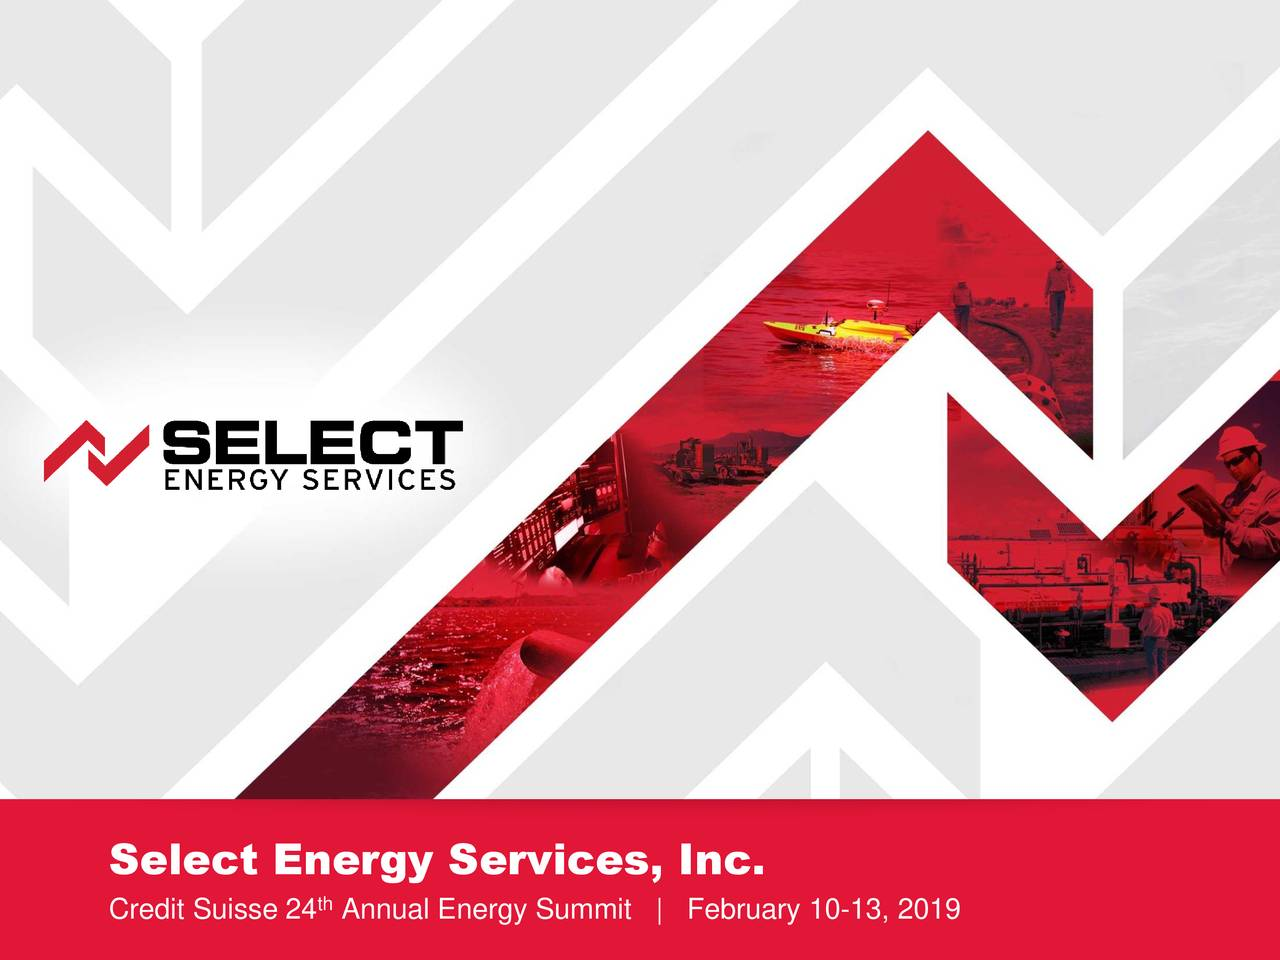 th Credit Suisse 24 Annual Energy Summit | February 10-13, 2019